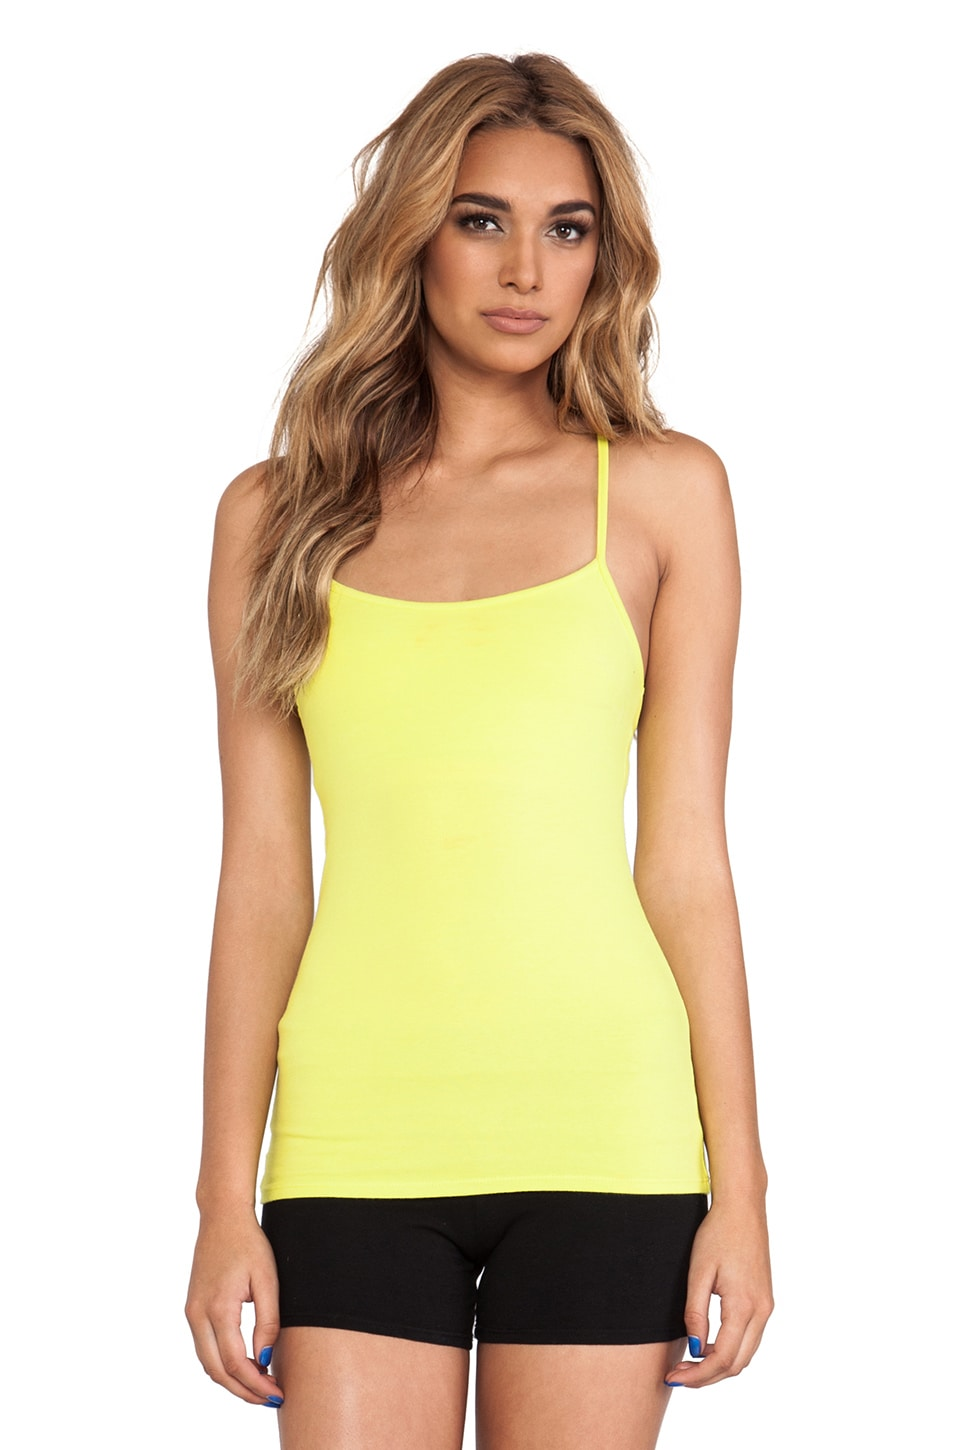 SOLOW Racerback Workout Cami in Citron